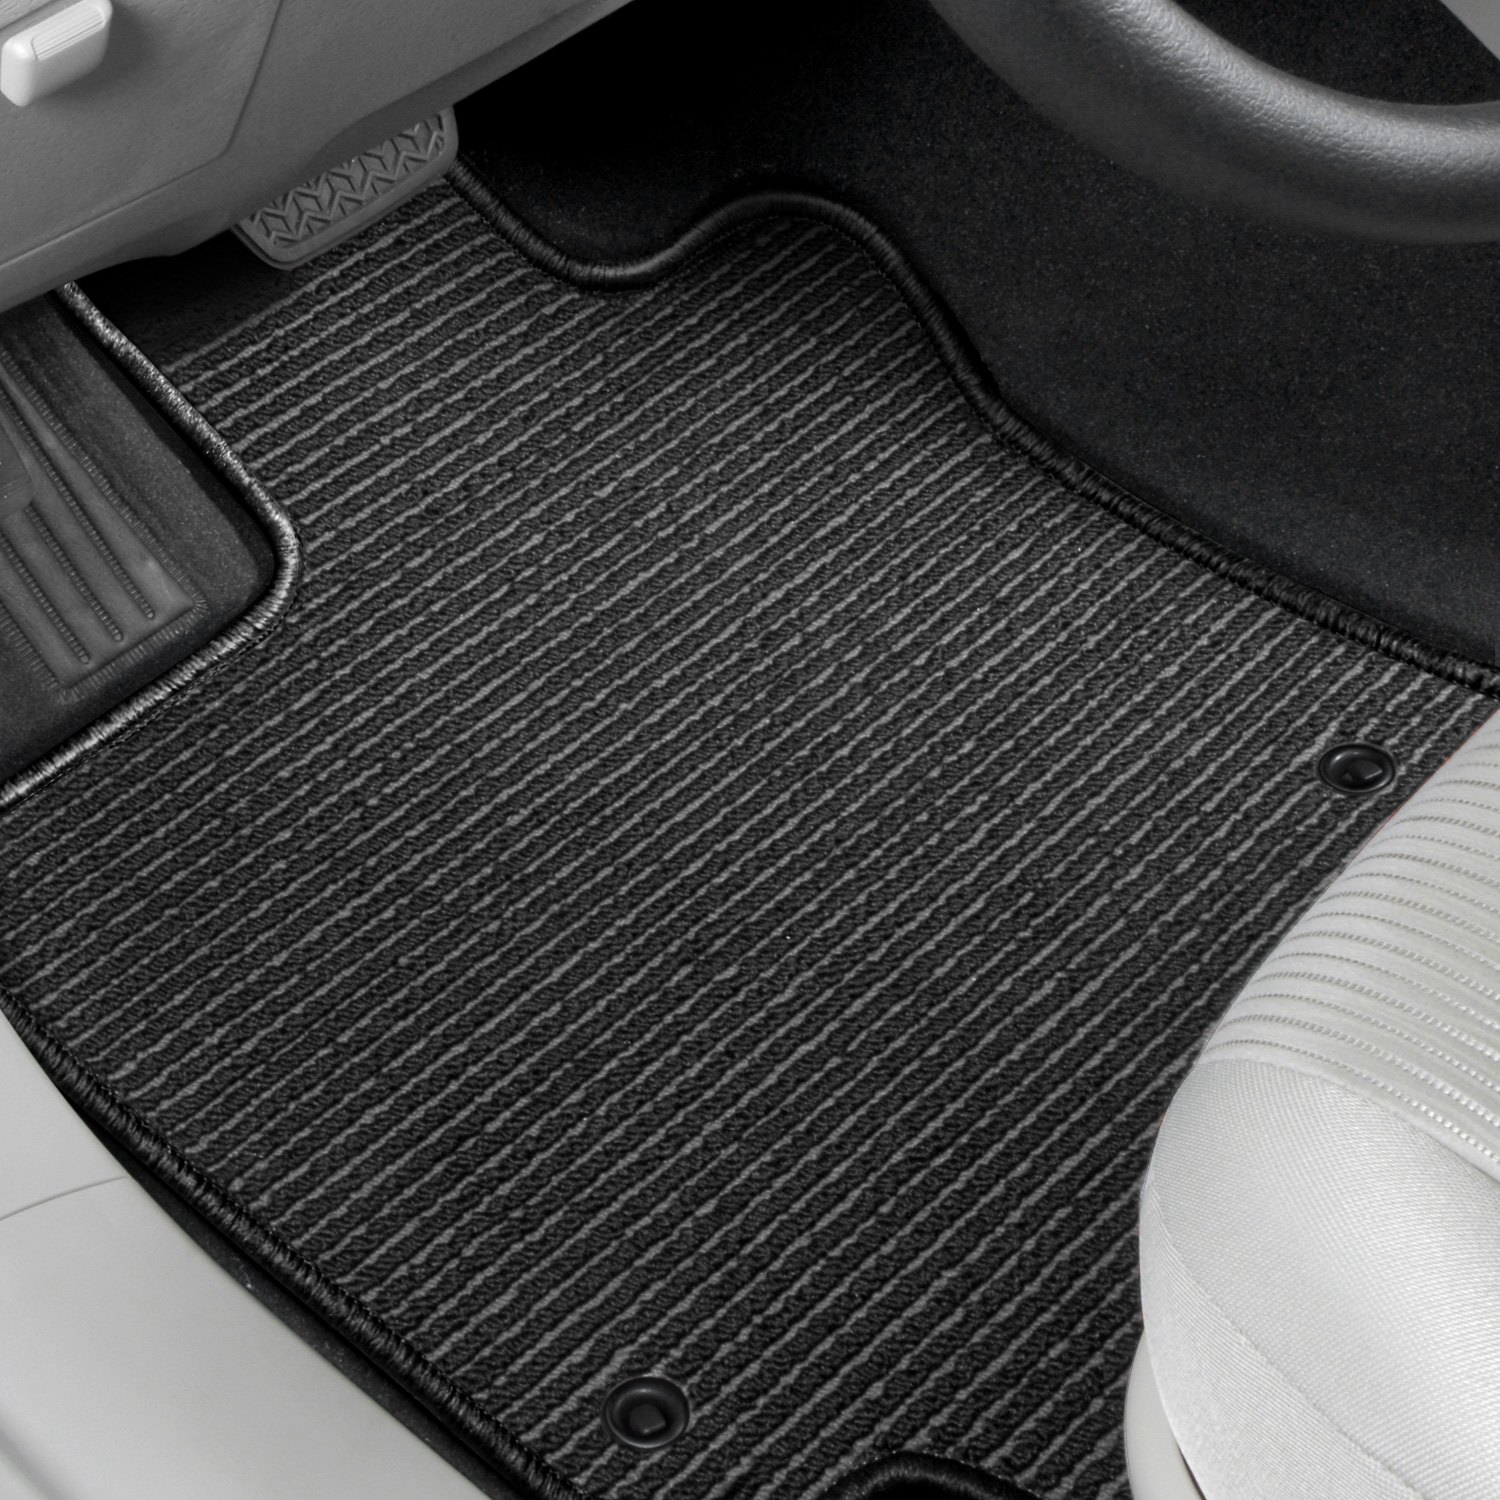 mats of mat rs auto focus ford floor boot car tailored inspirational generation and